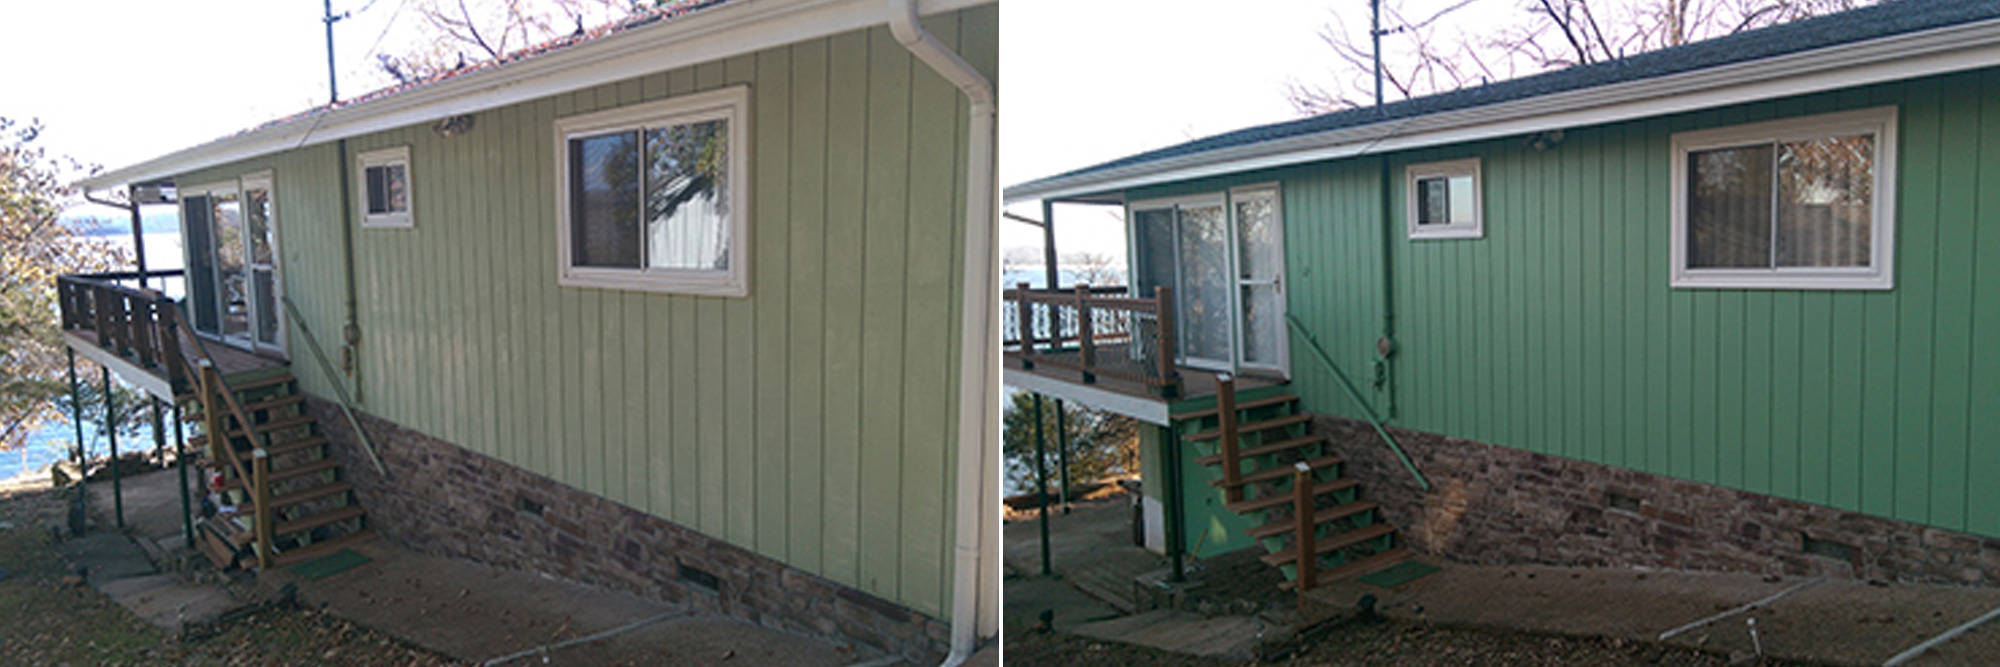 House Exterior - Before & After